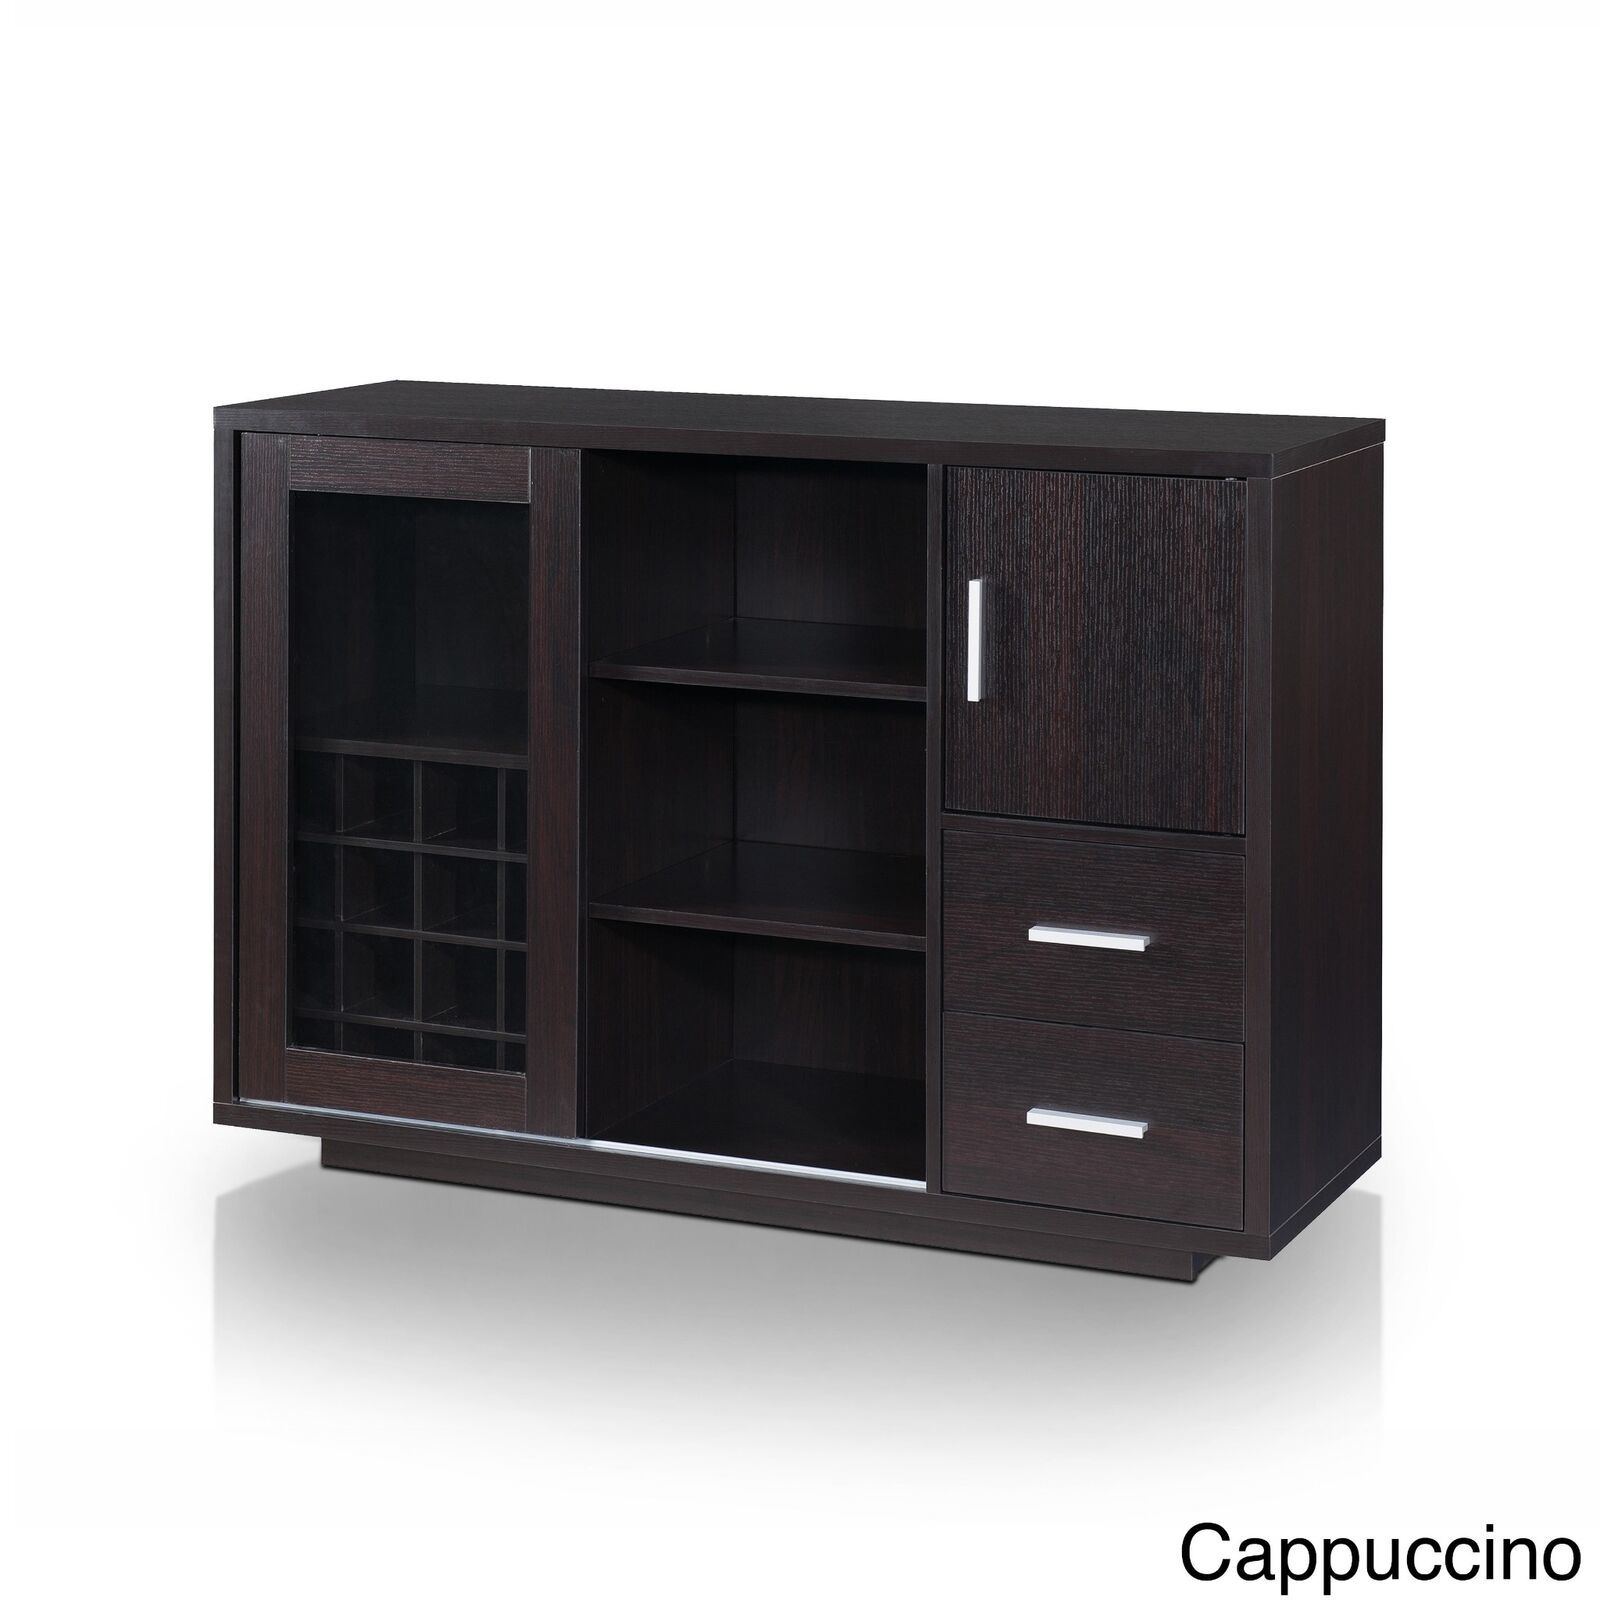 Espresso Brown Dry Bar Storage Holds 16 Bottles Wine Rack Liquor Cabinet Buffet